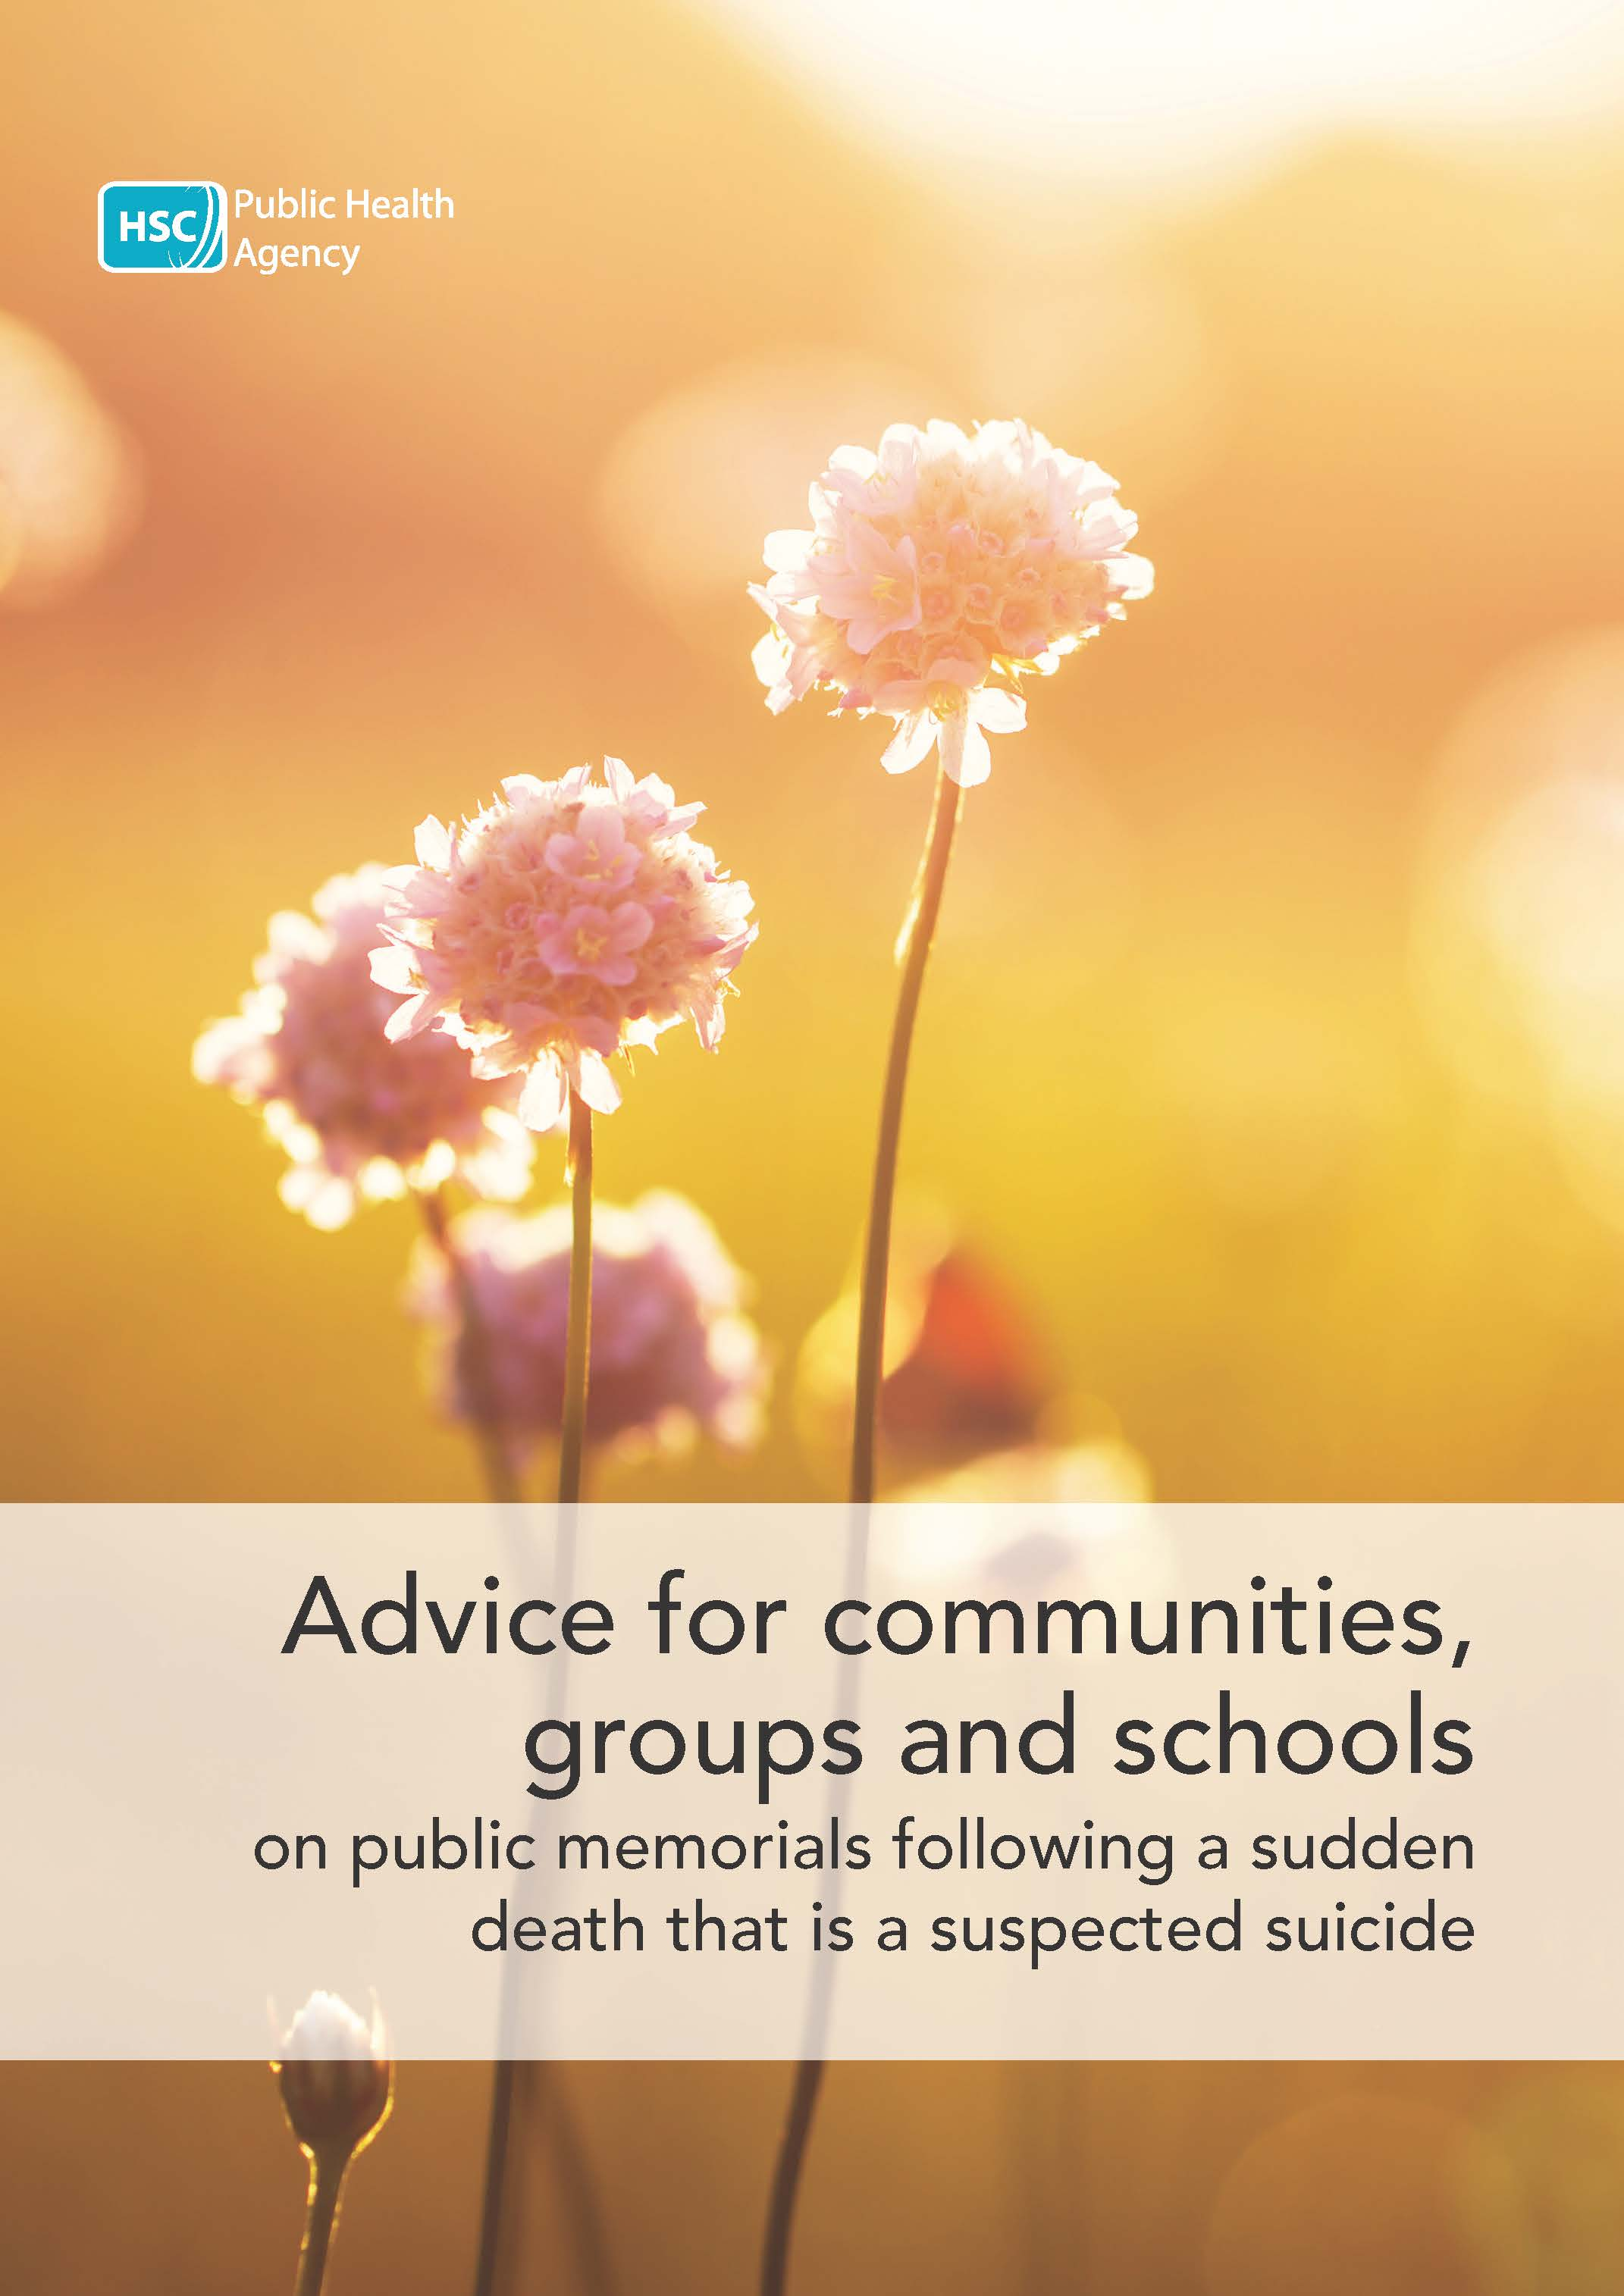 Advice for communities, groups and schools on public memorials